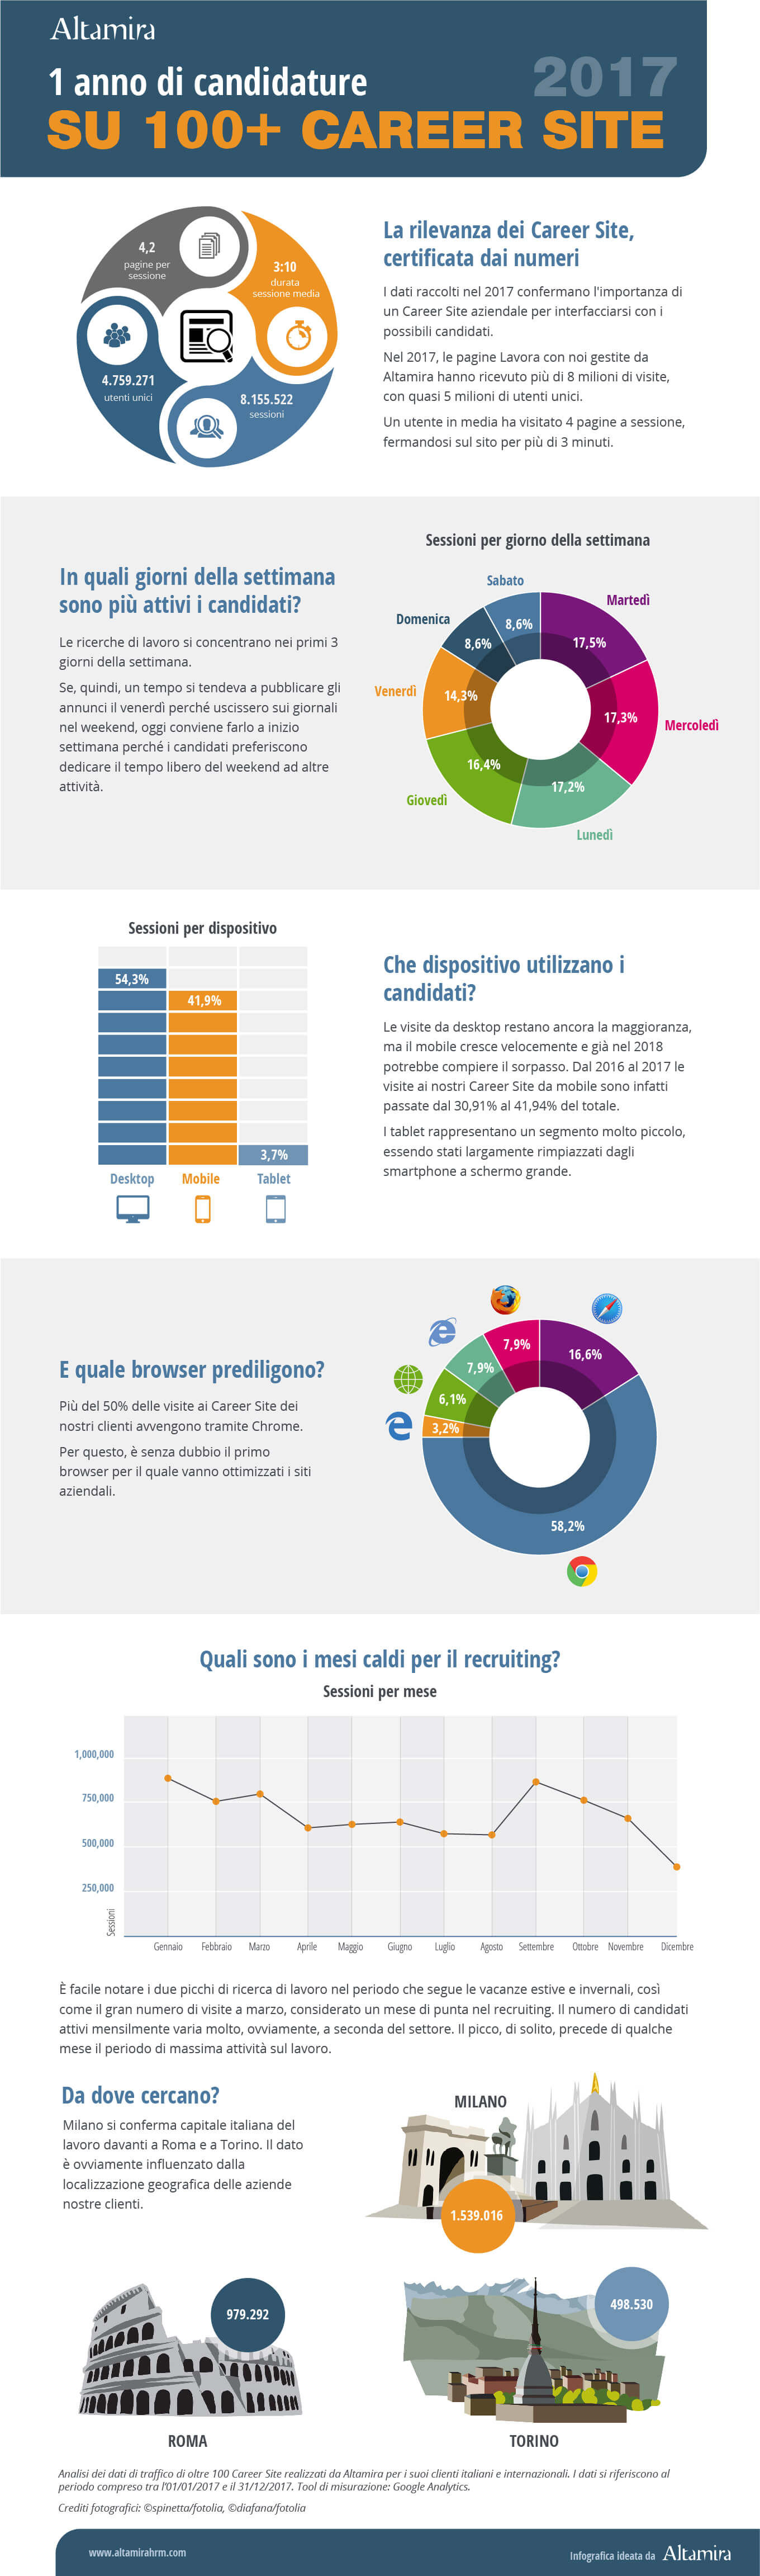 infografica career site Altamira